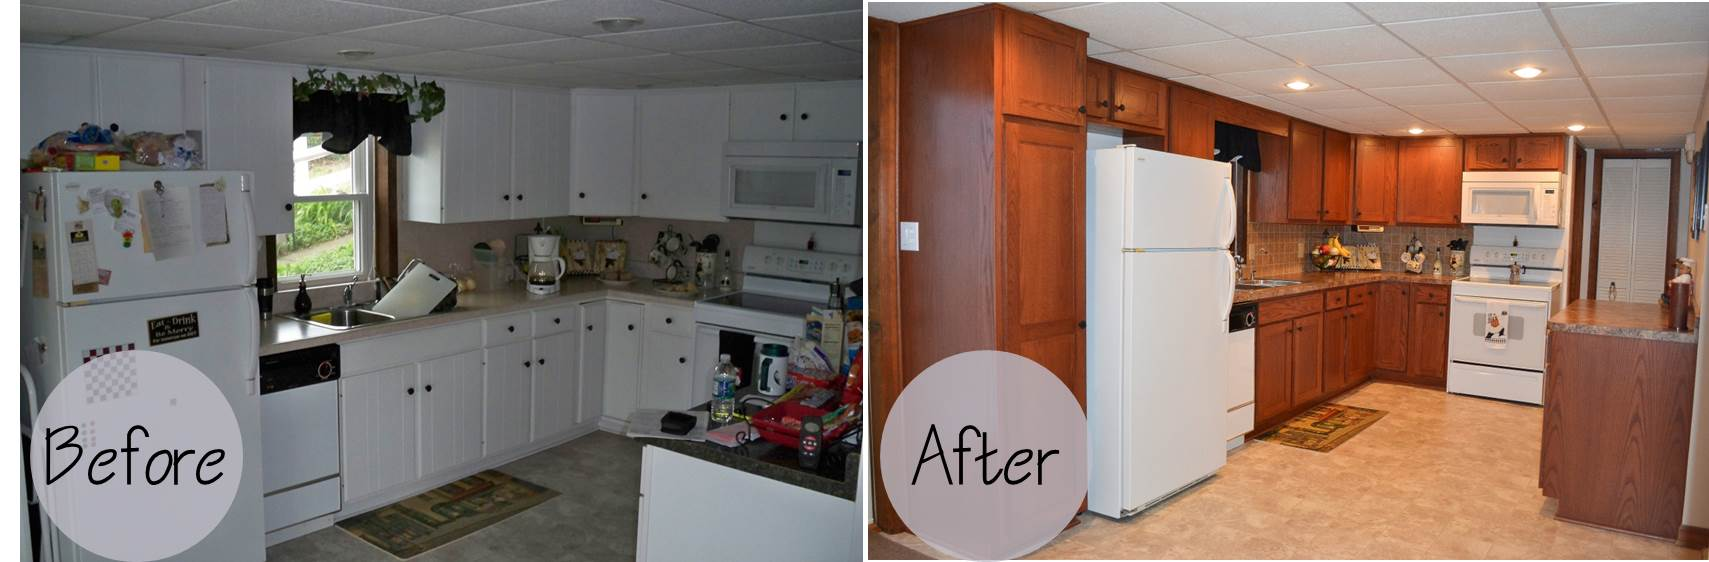 Cabinet Refacing Wheeler Brothers Construction - Us cabinet refacing